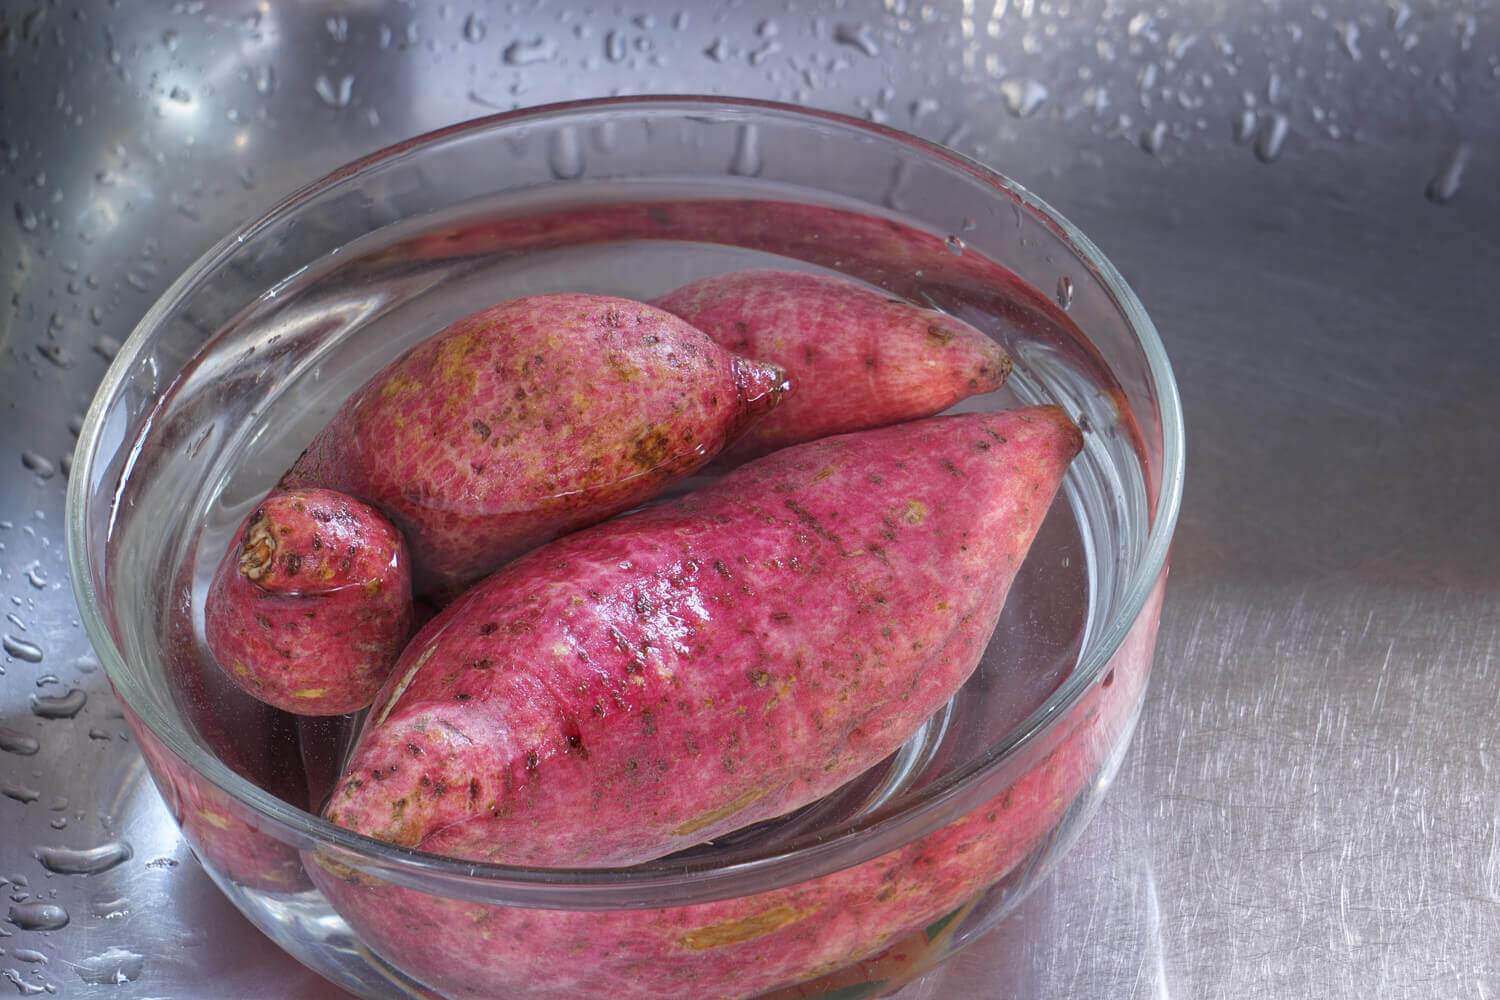 sweet potato Immersed in water